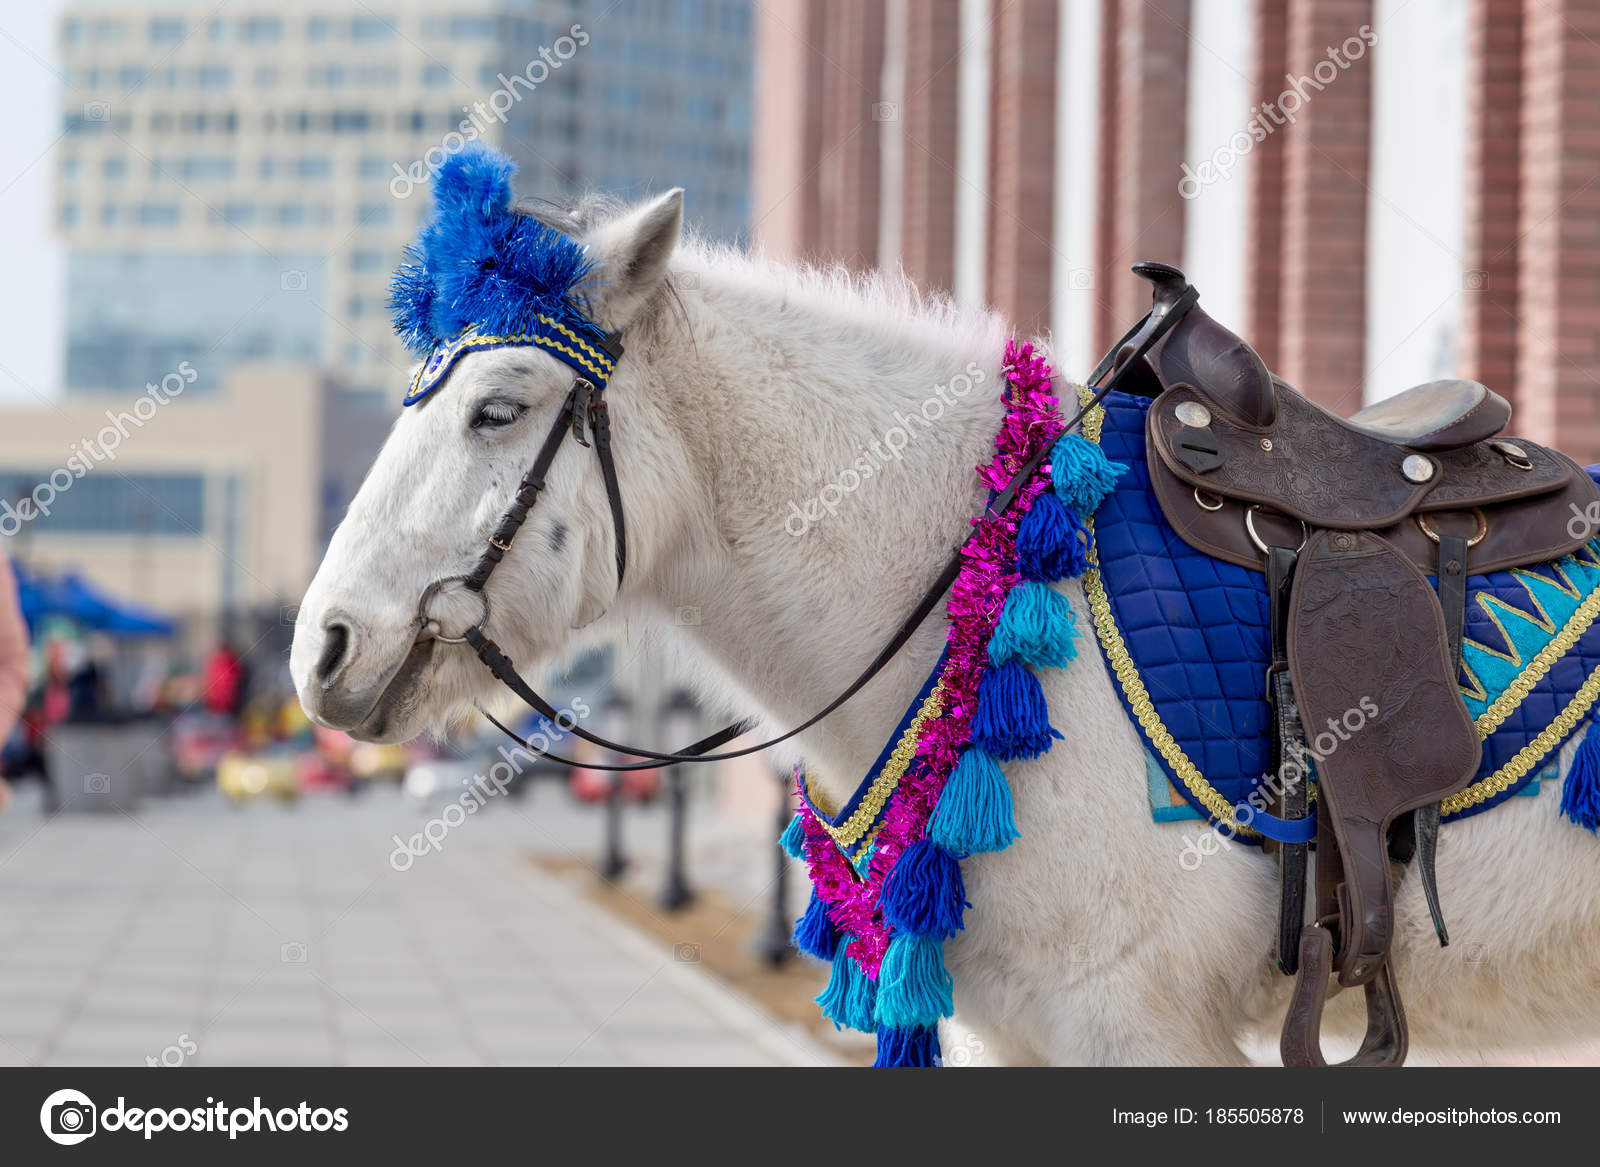 hight resolution of white pony smart harness city downtown animals city using ponies stock photo